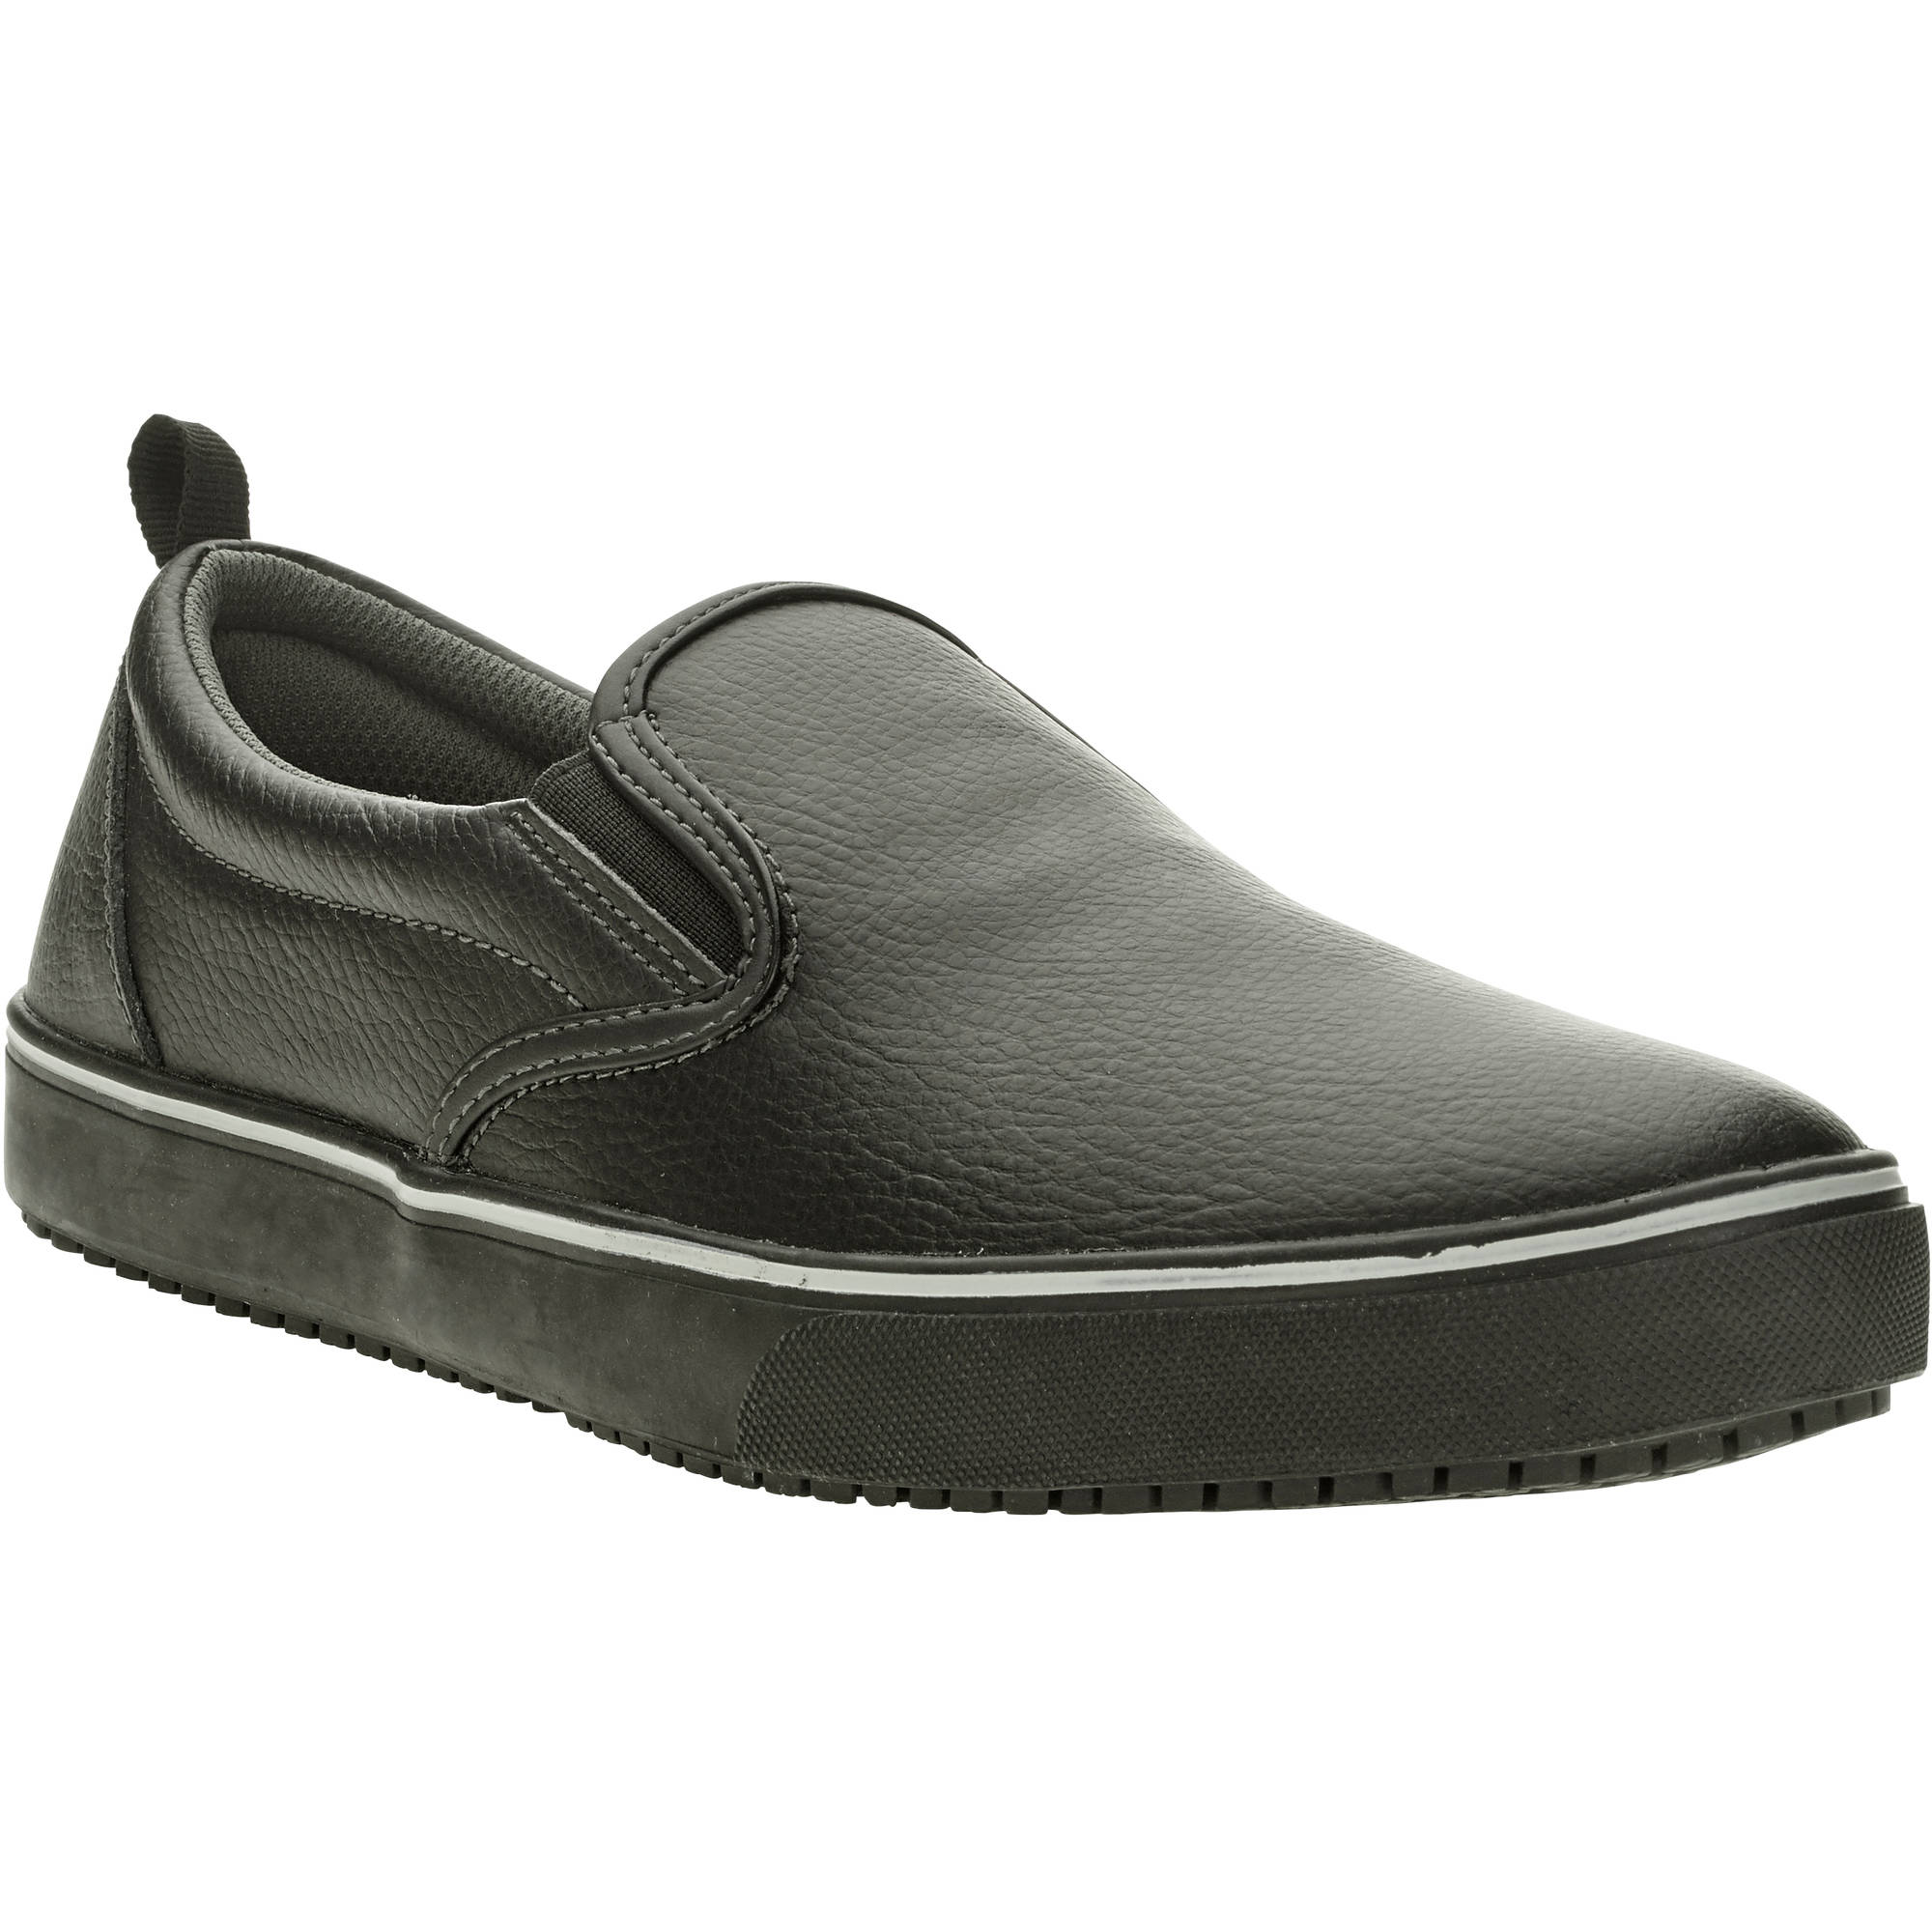 tredsafe unisex ric slip resistant shoe by at shoe nook